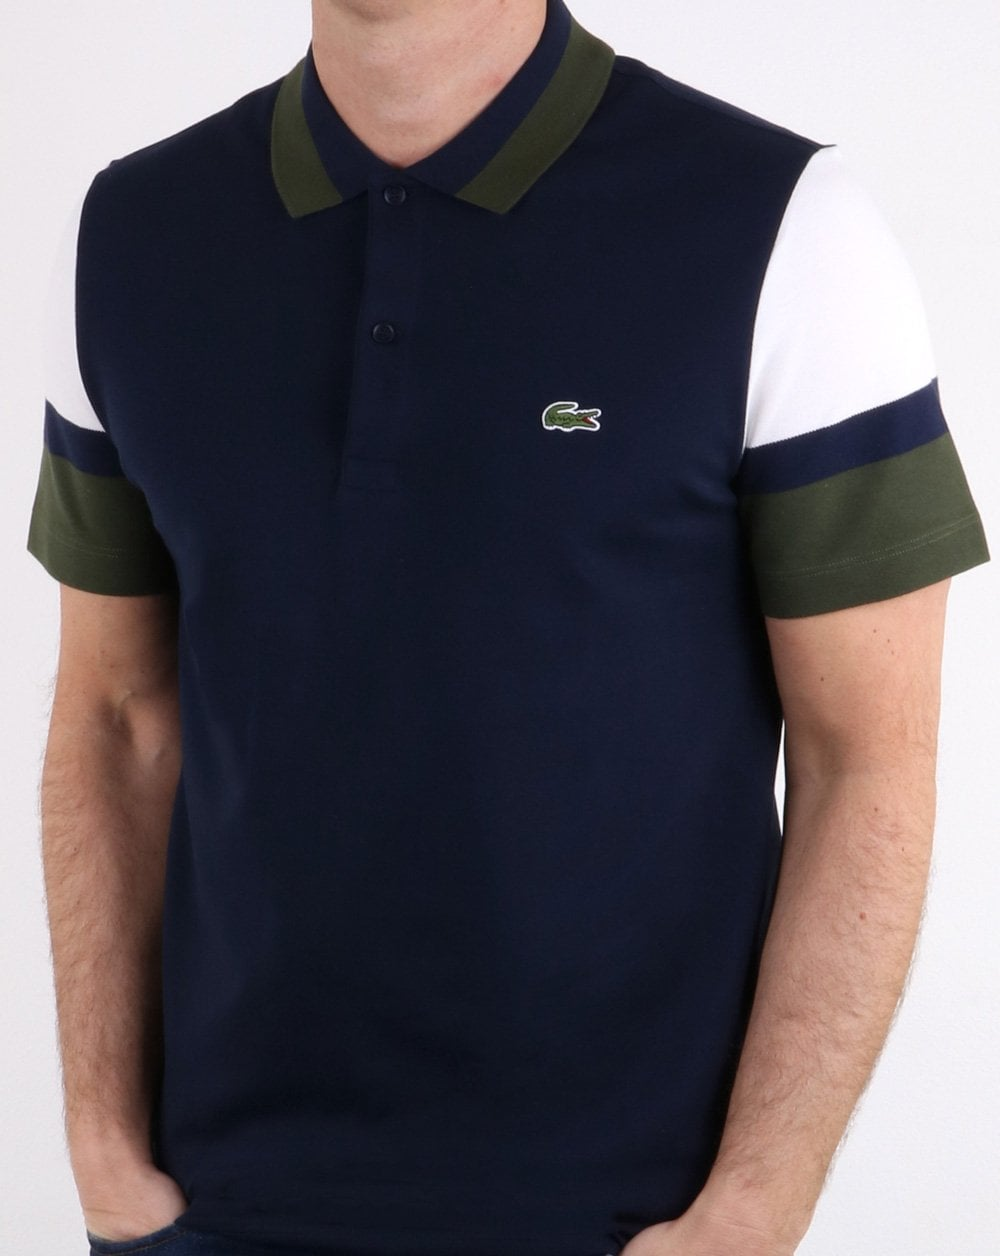 6f169a45 Lacoste Lacoste Colour Sleeve Polo Shirt Navy, White and Green